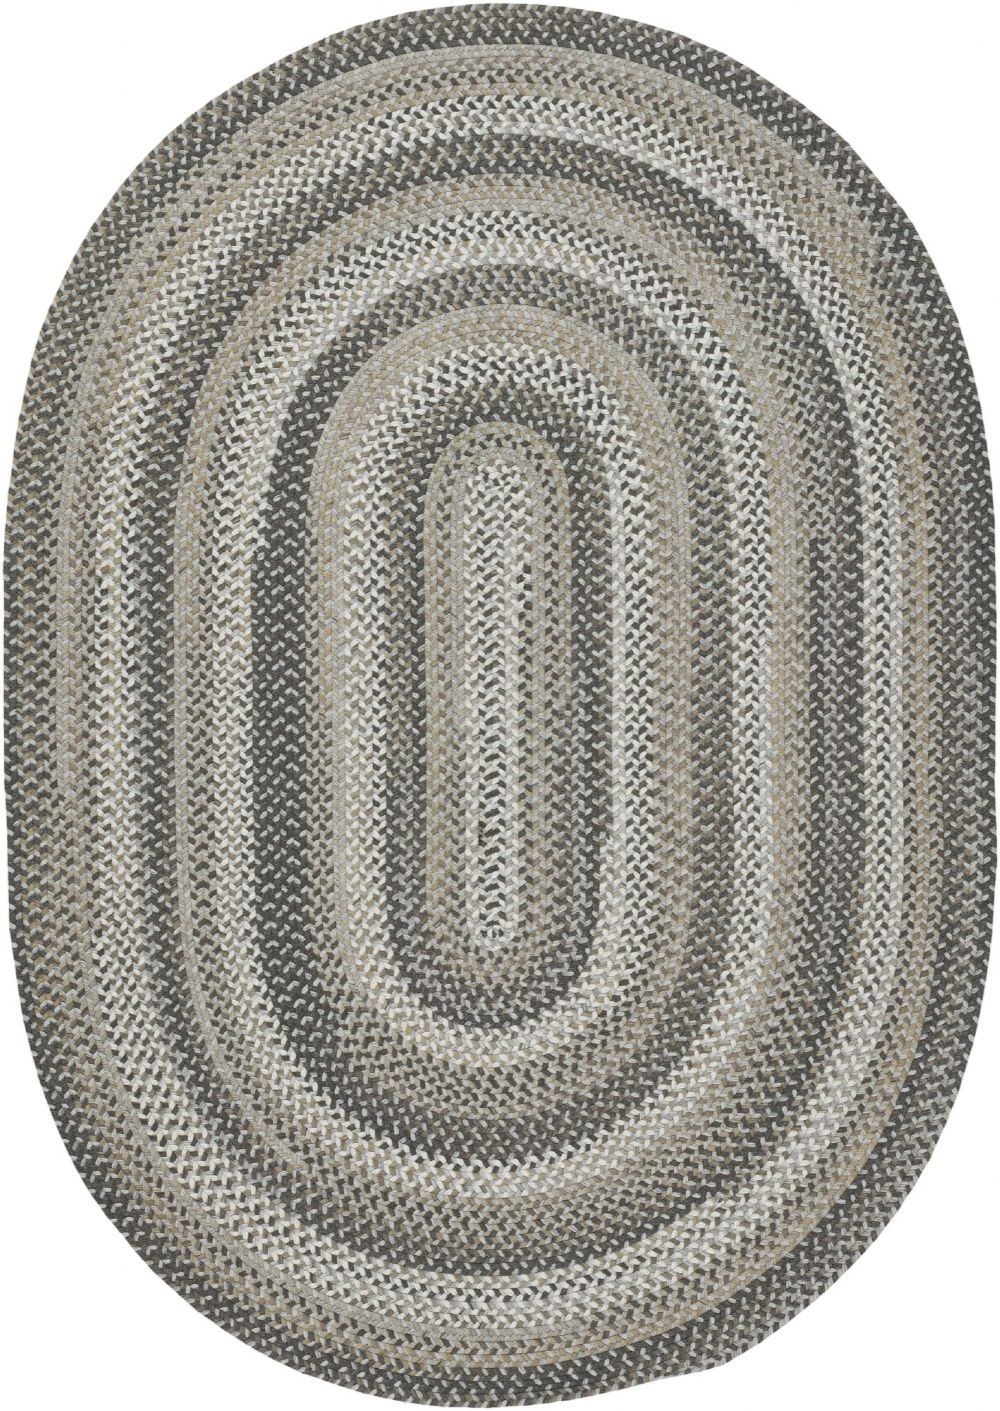 surya huntington braids braided area rug collection